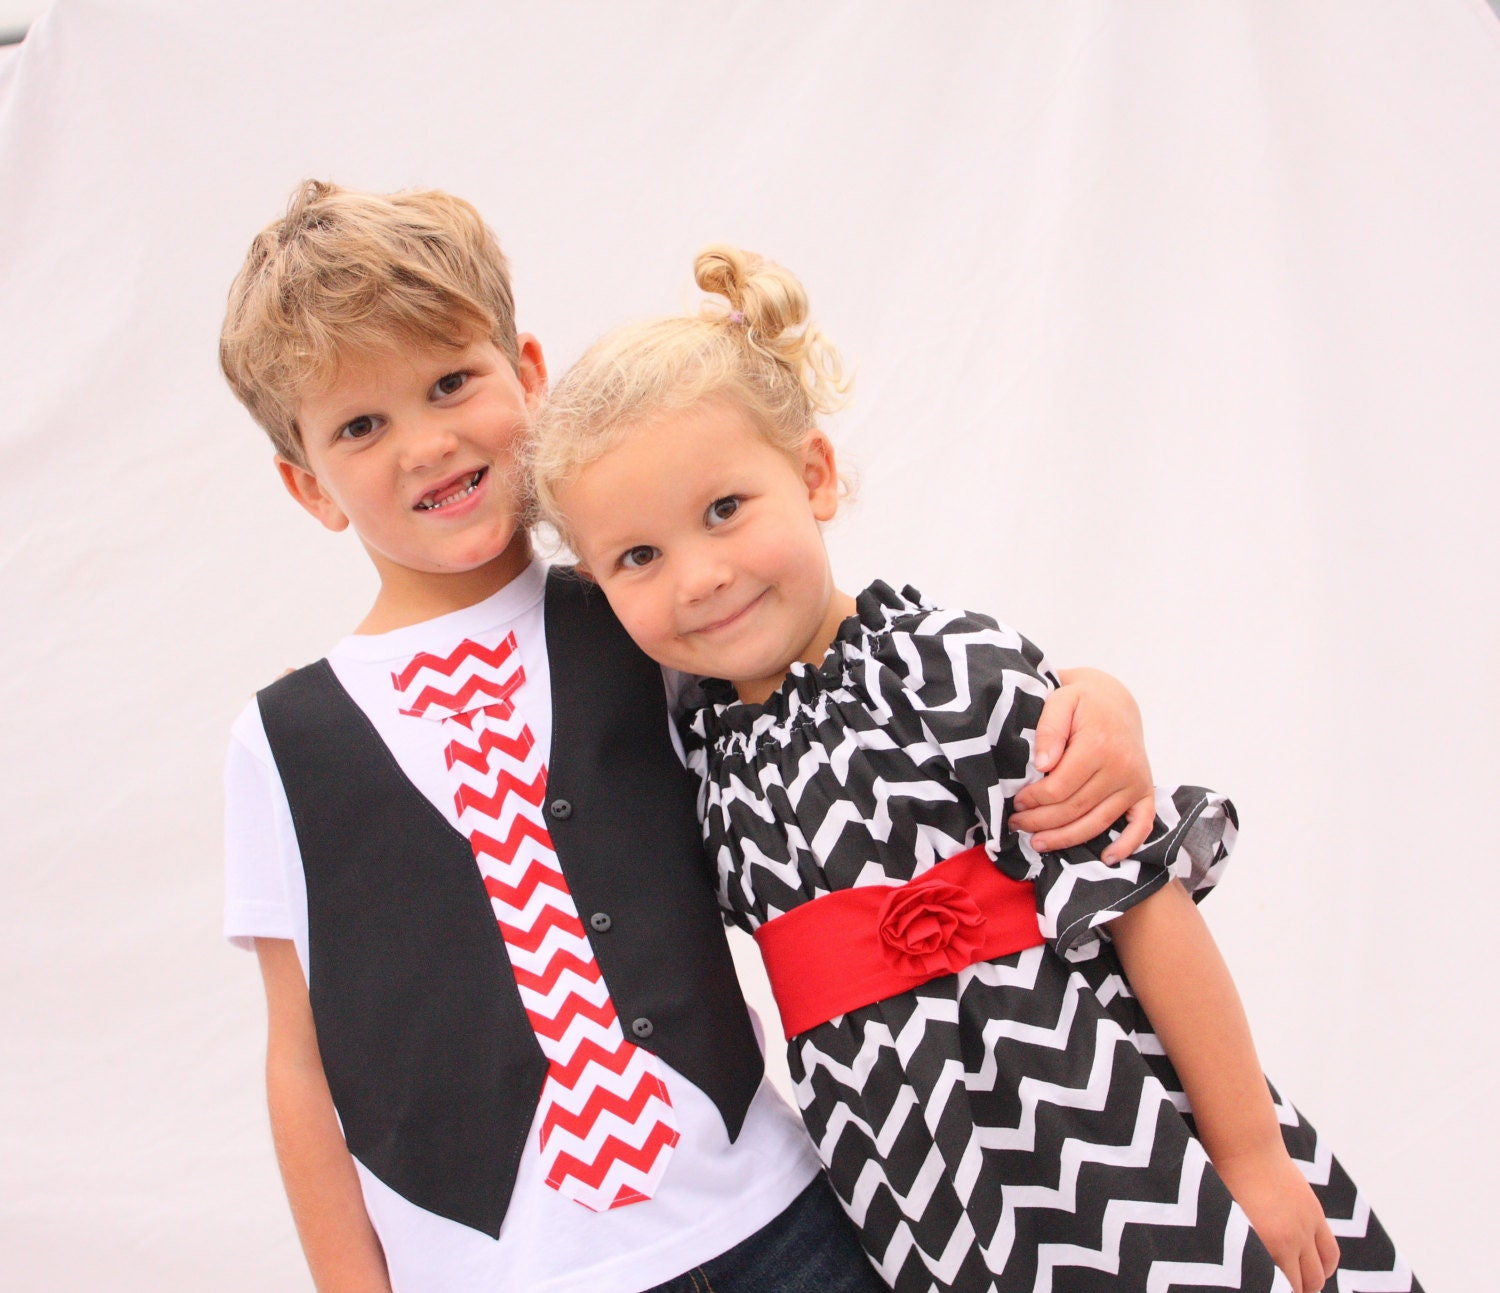 Shop for customizable Sibling Sets clothing on Zazzle. Check out our t-shirts, polo shirts, hoodies, & more great items. Start browsing today!